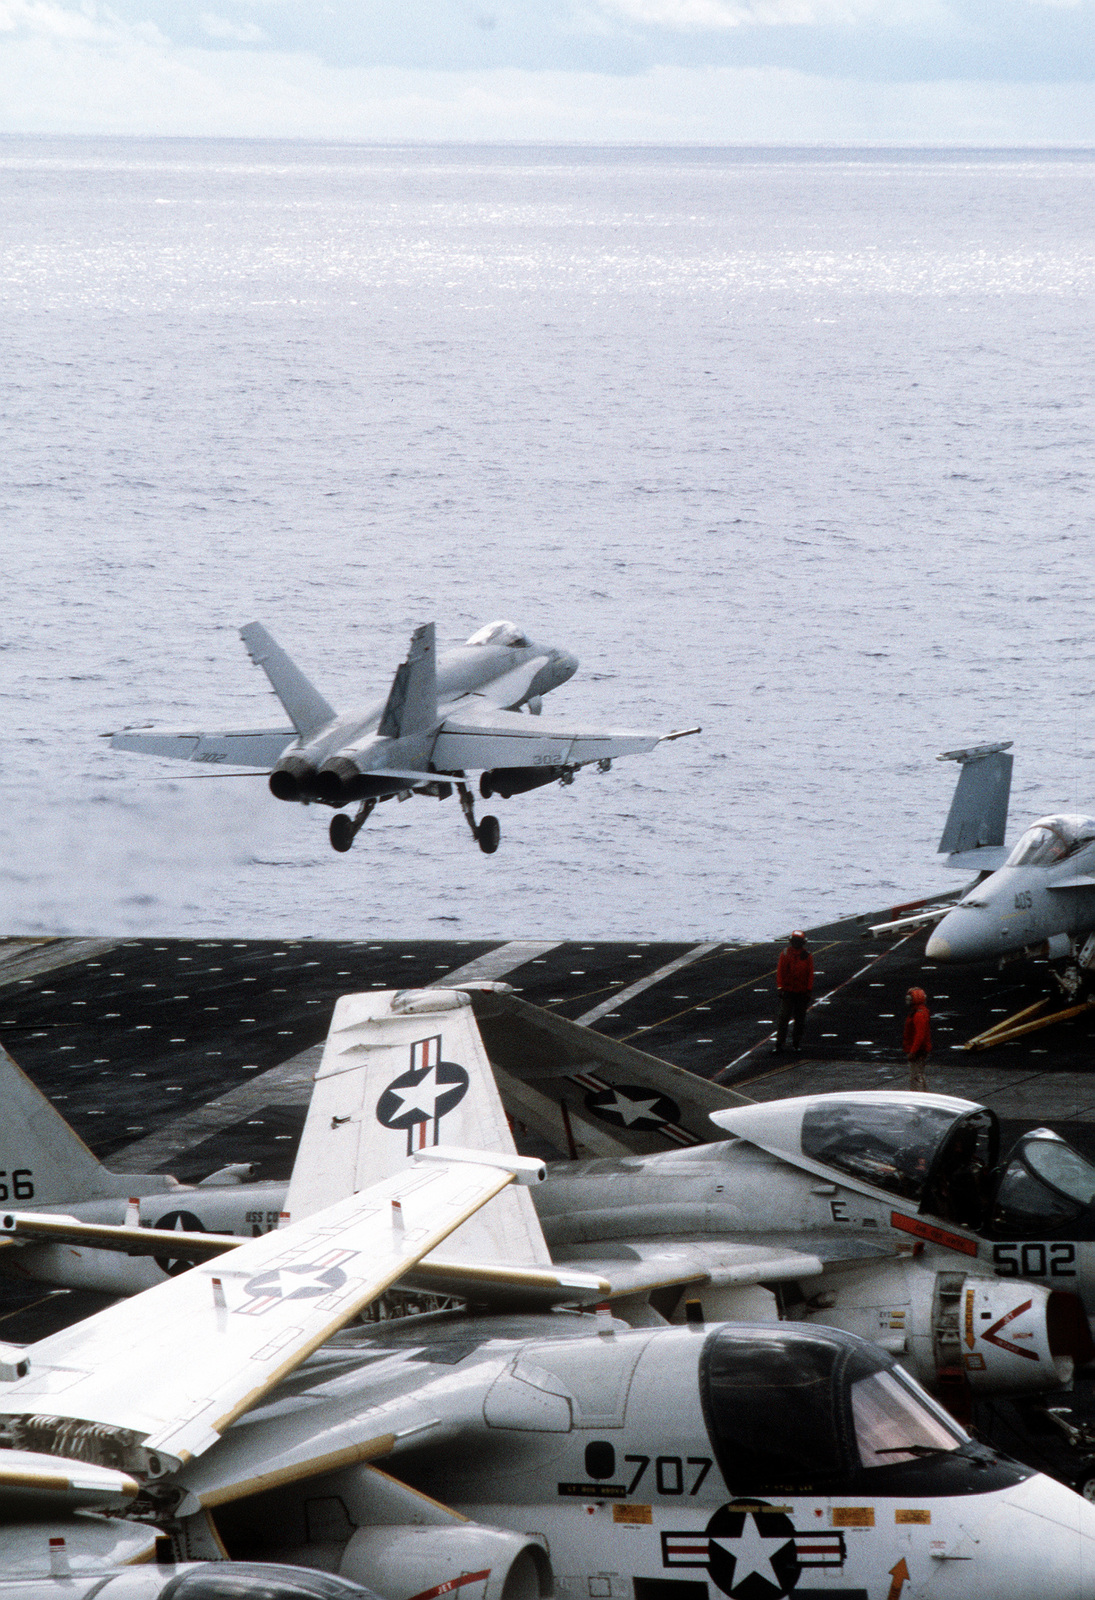 An F/A-18 Hornet aircraft takes off from the aircraft carrier USS CONSTELLATION (CV-64) during Fleet Exercise 8. In the foreground are an S-3A Viking and an A-6E Intruder aircraft